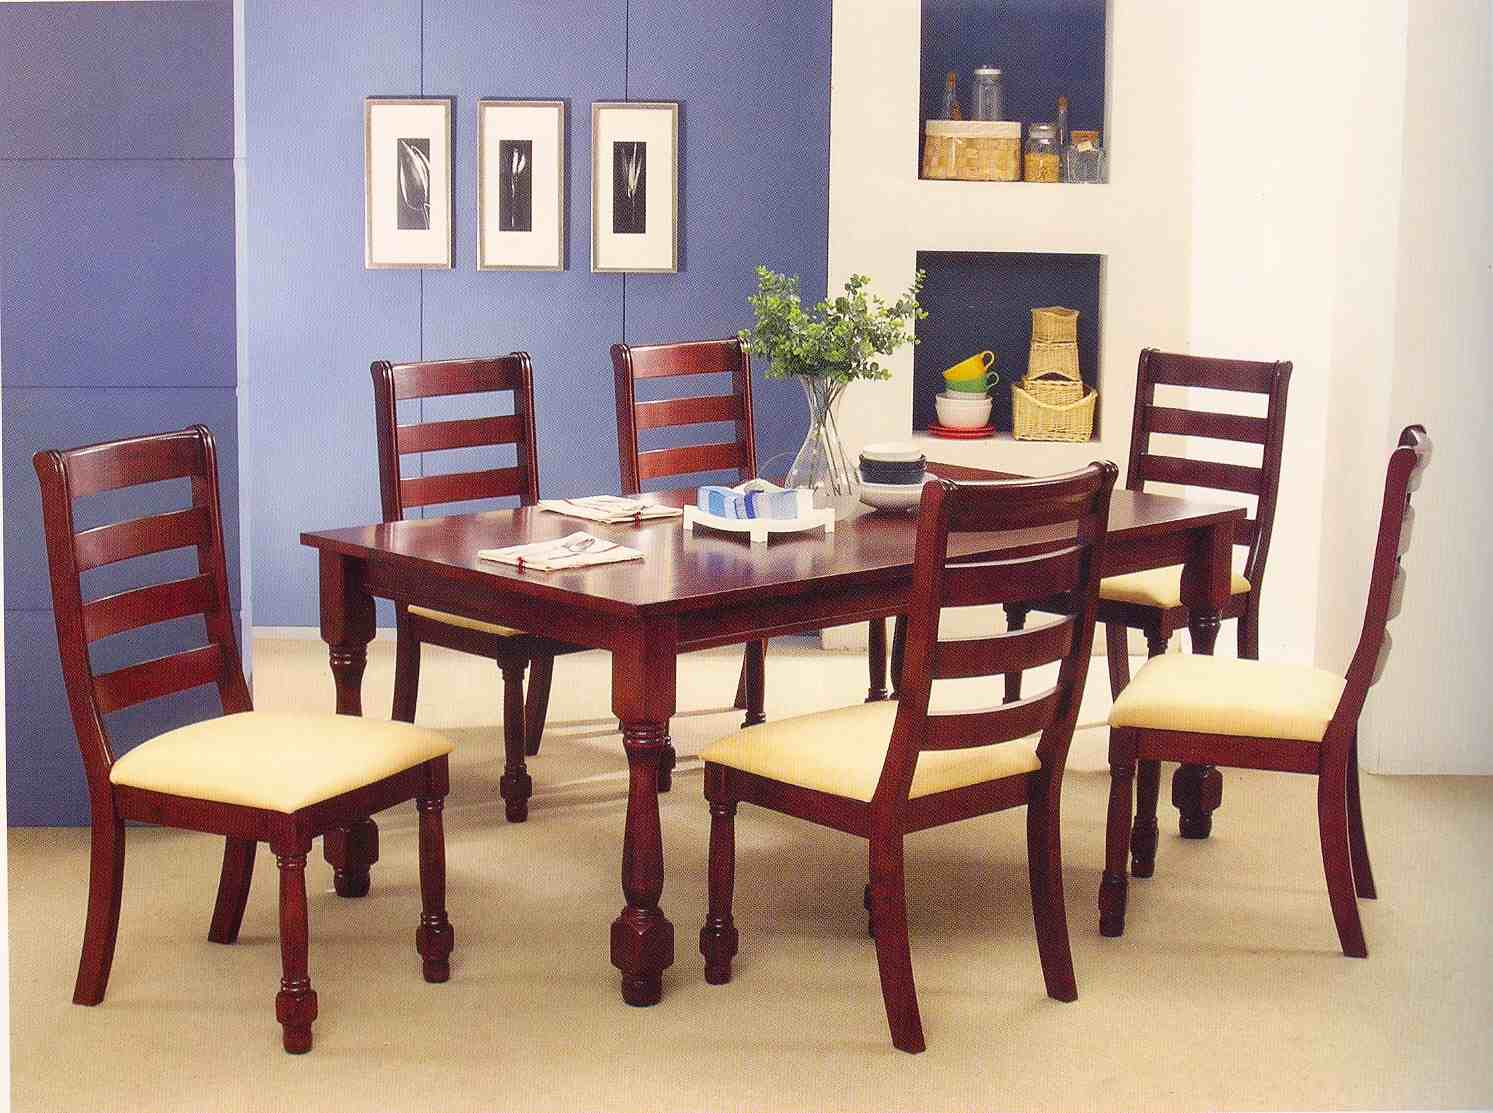 Dining Room Set For Even More Tastier Meals Home